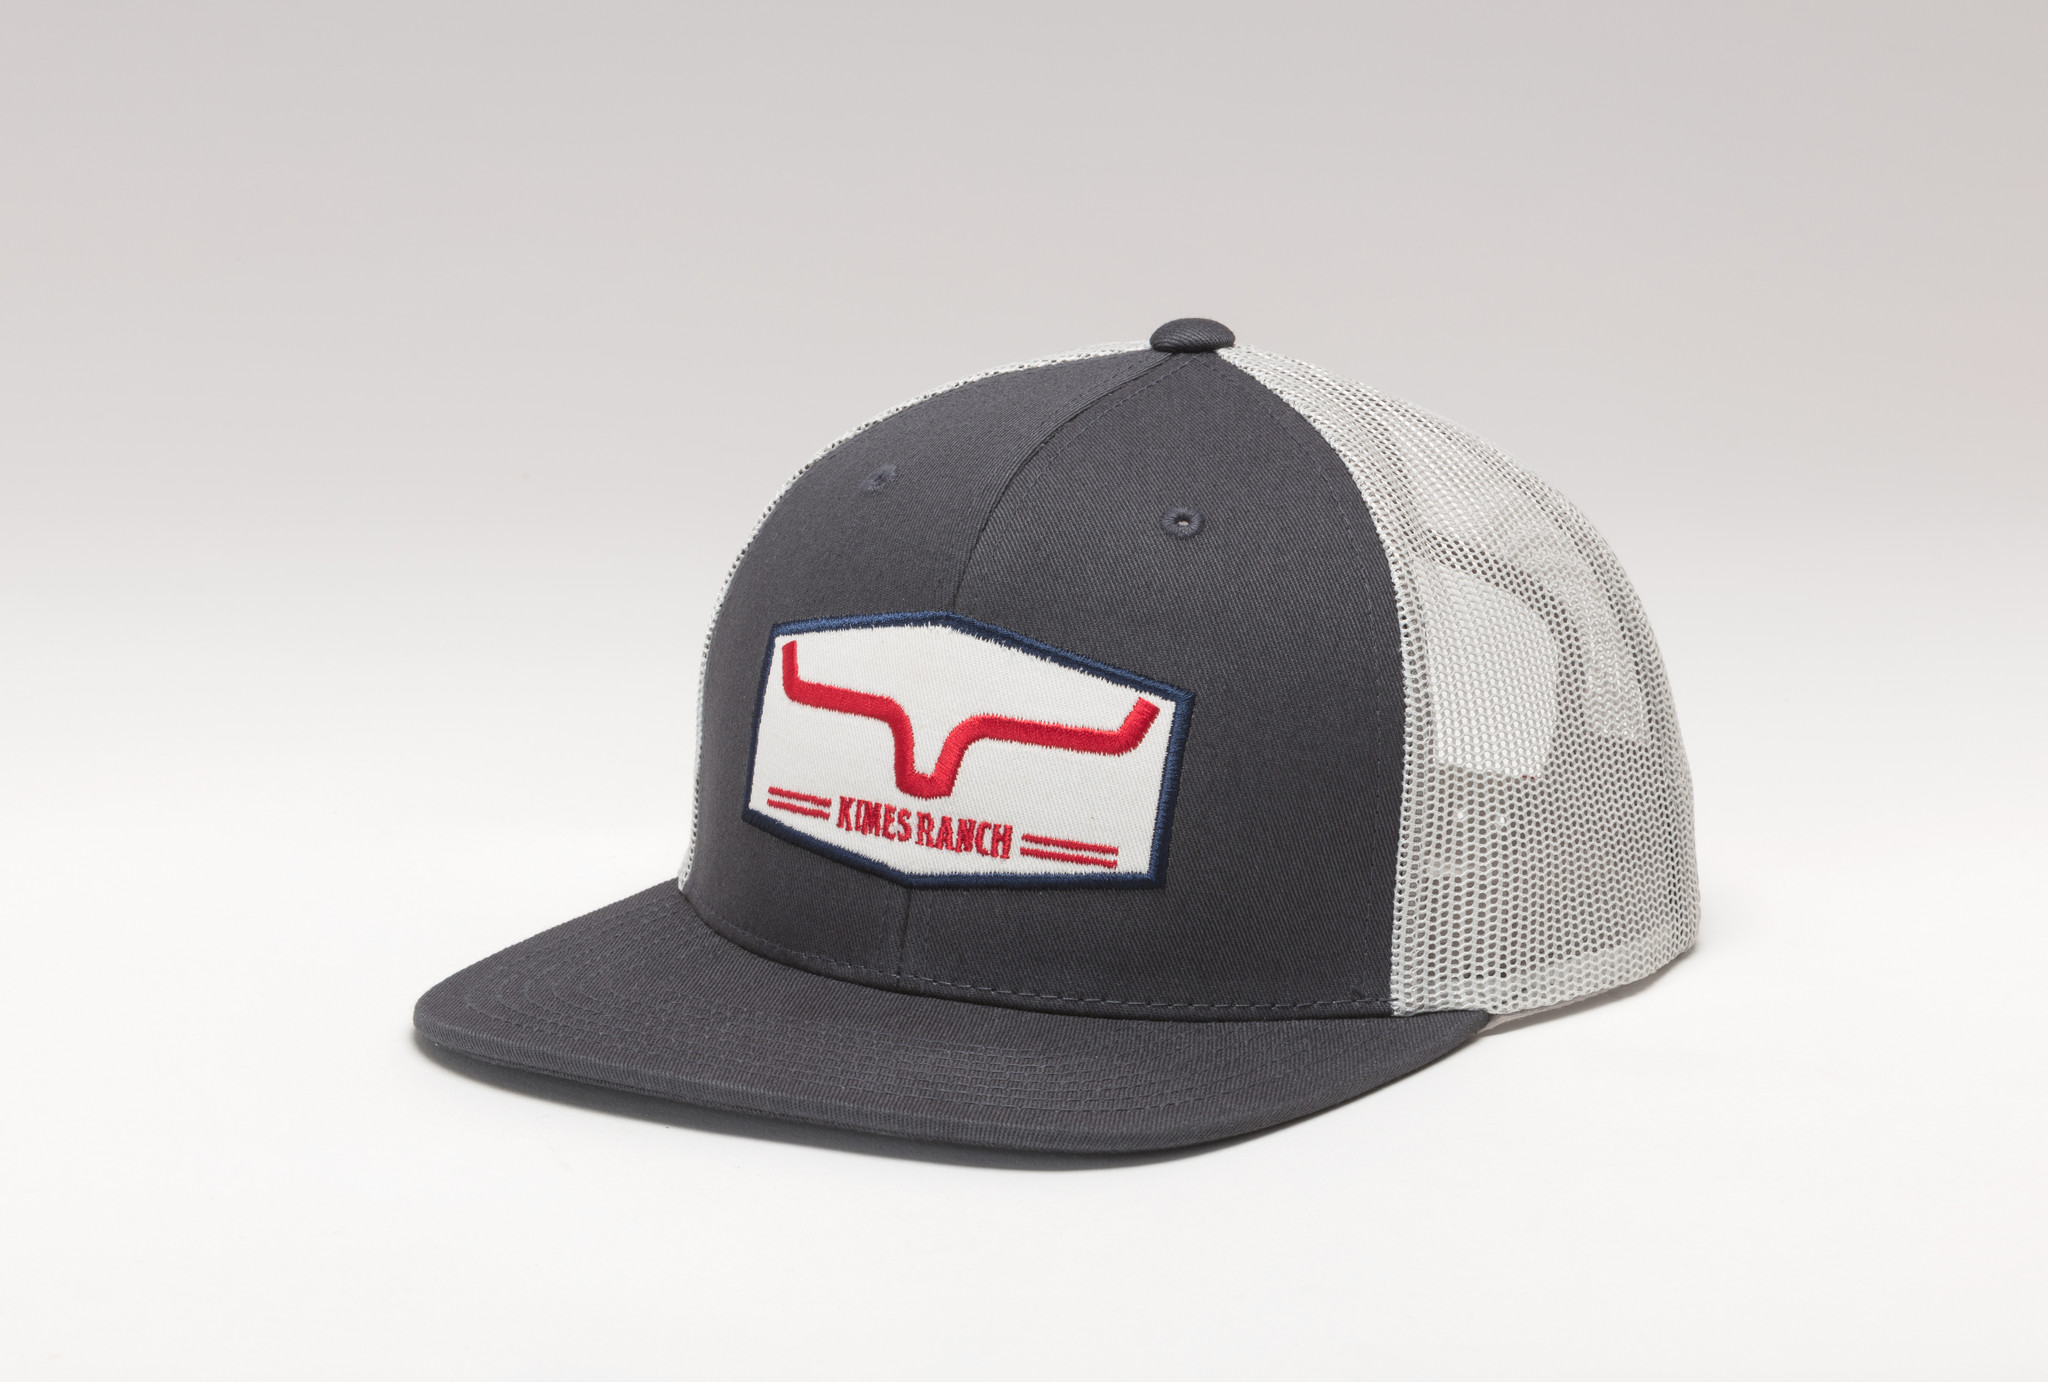 Kimes Ranch Replay Trucker Charcoal